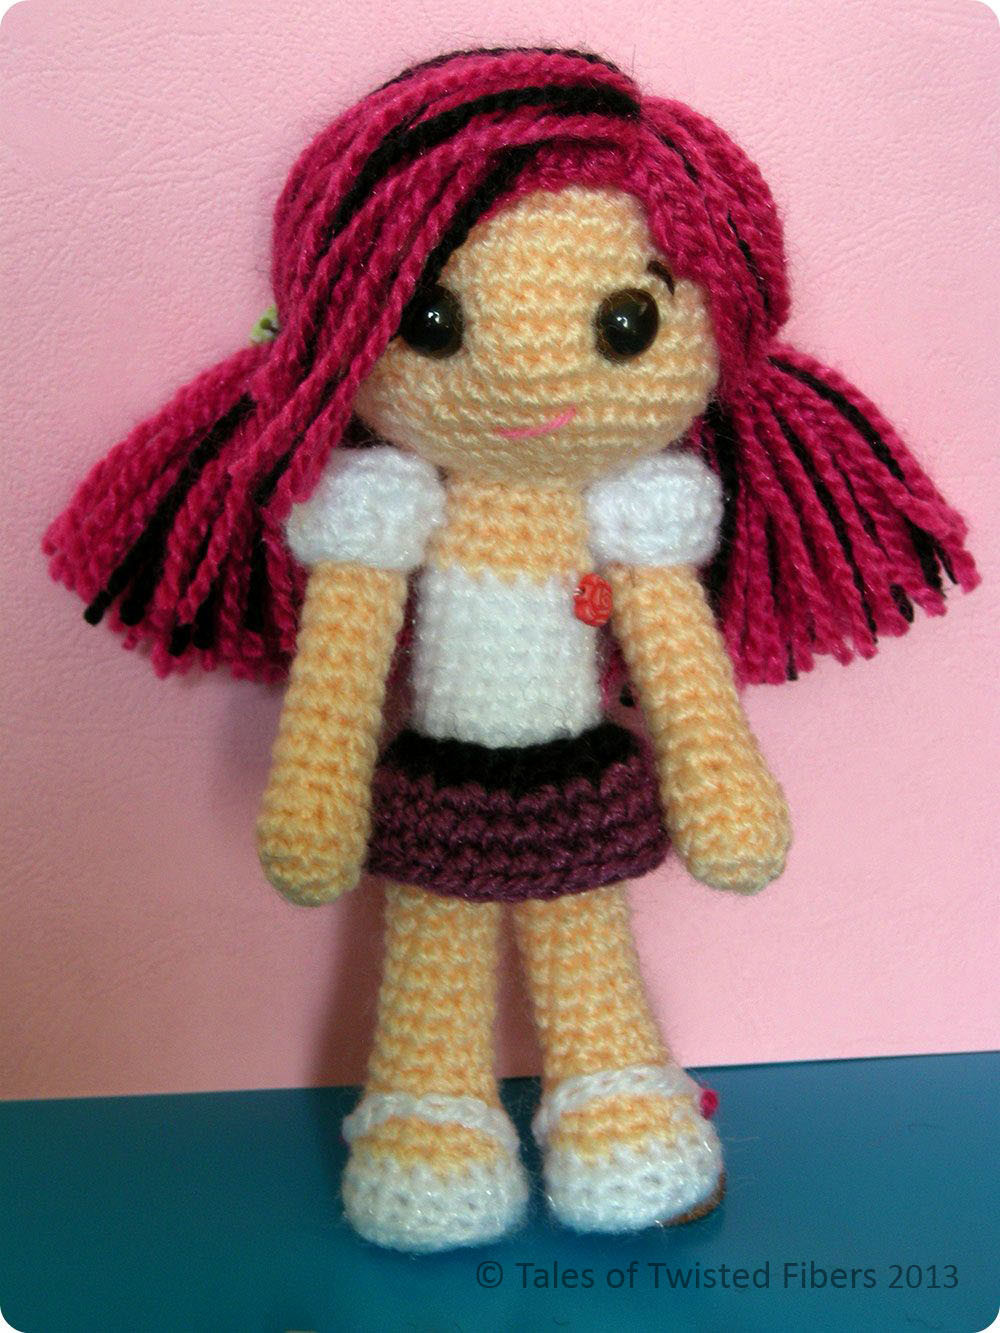 Crochet Doll Awesome Amy the Amigurumi Doll Free Pattern – Tales Of Twisted Fibers Of Delightful 47 Pictures Crochet Doll